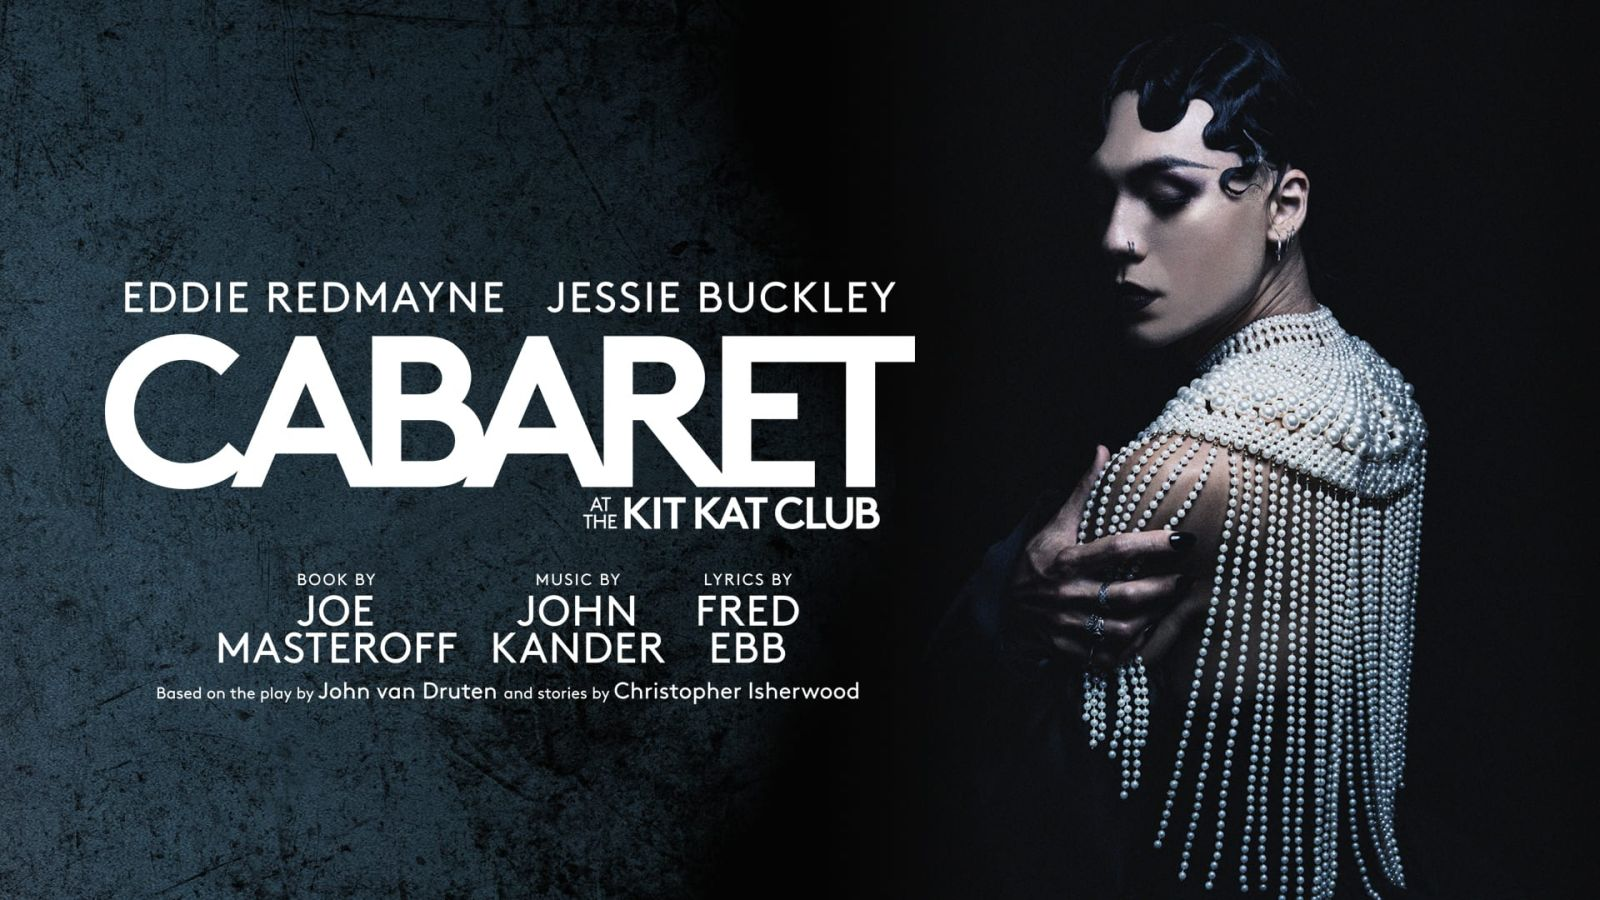 CABARET AT THE KIT KAT CLUB with Andre Refig